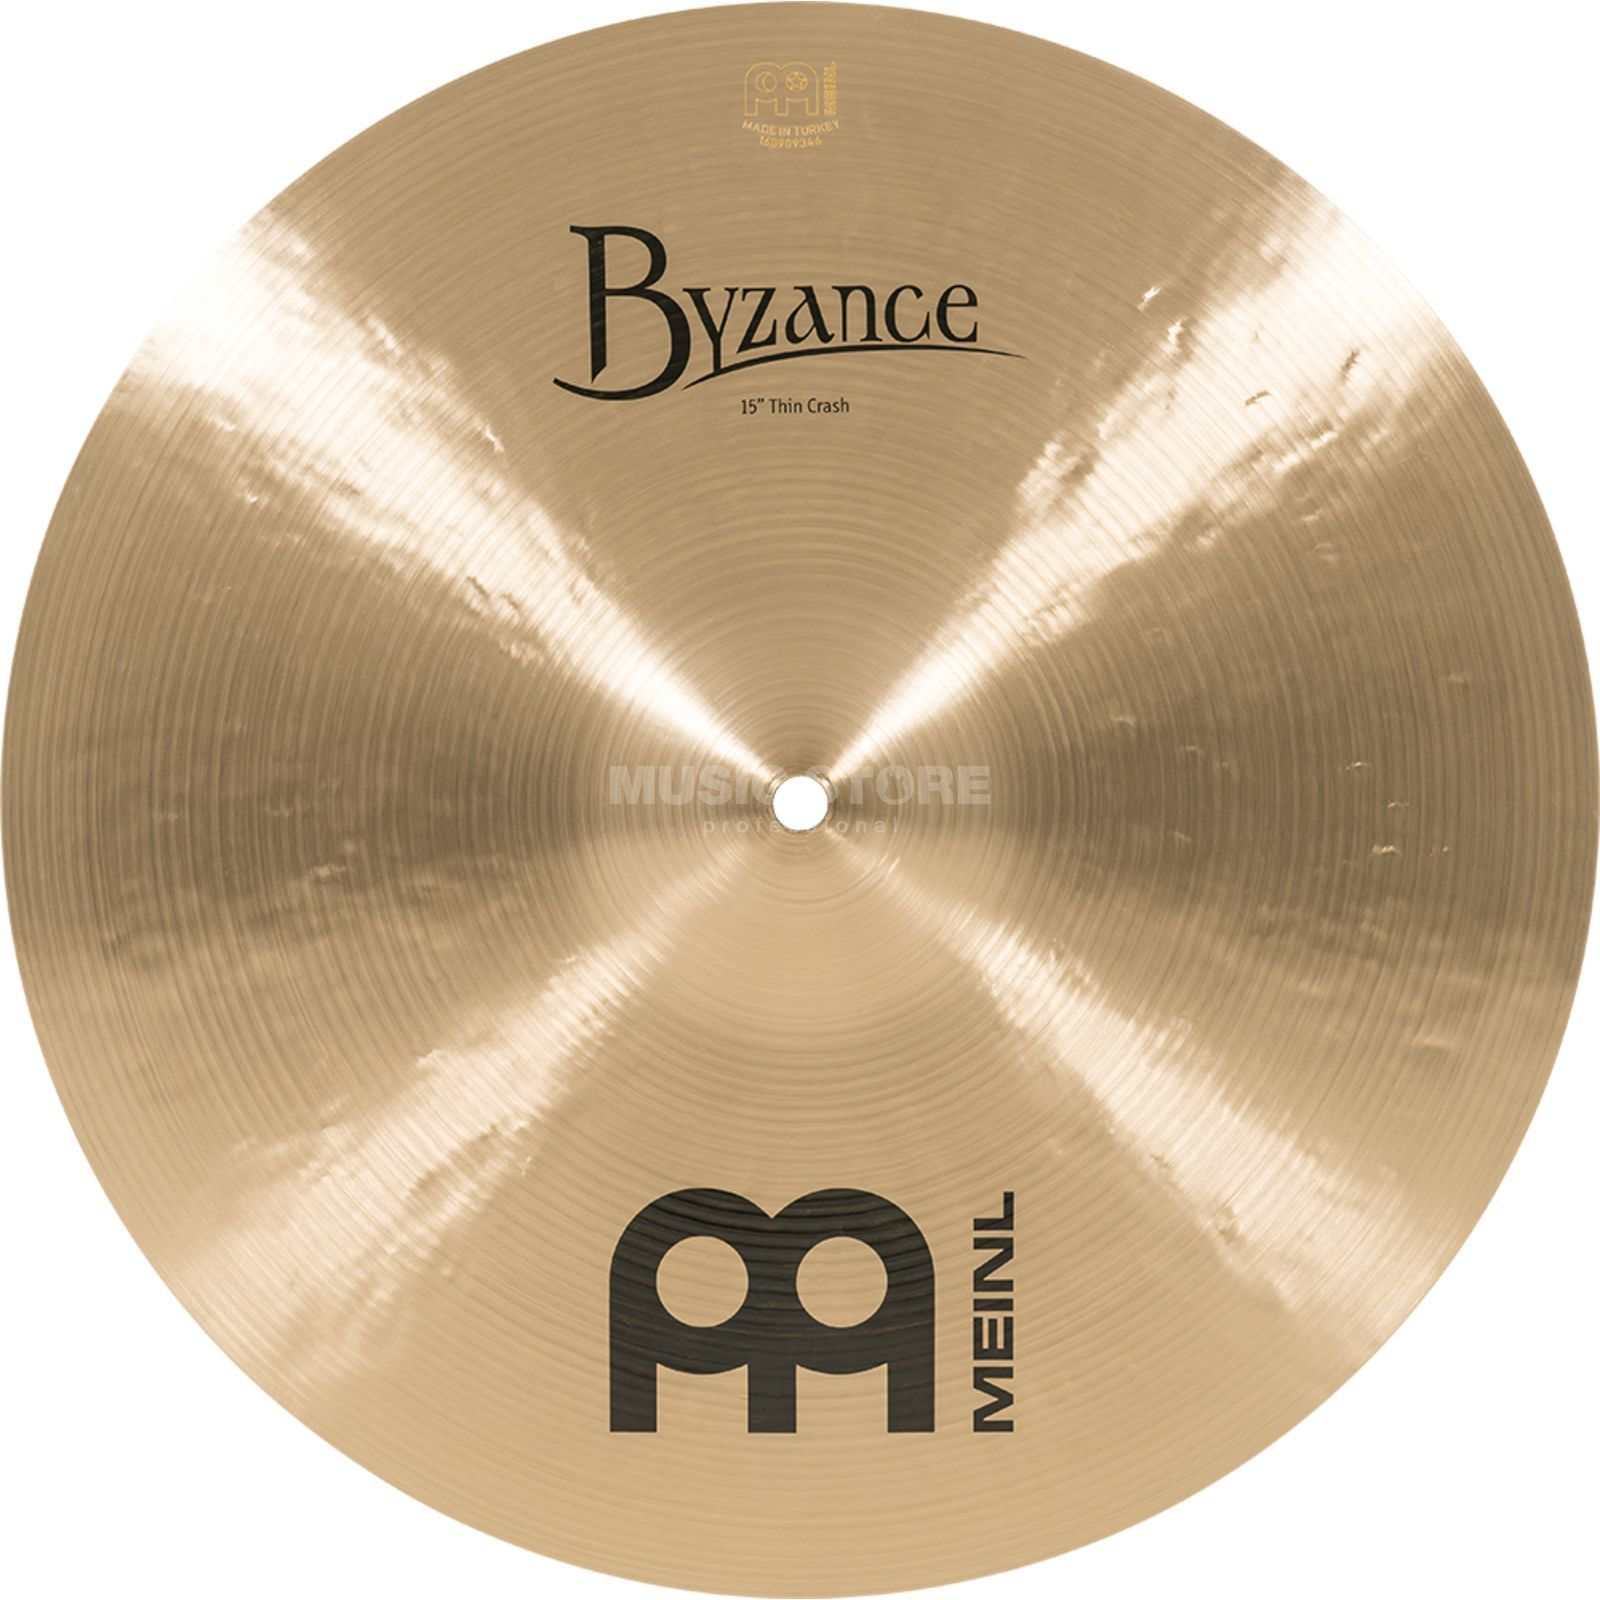 "Meinl Byzance Thin Crash 15"", B15TC, Traditional Finish Product Image"